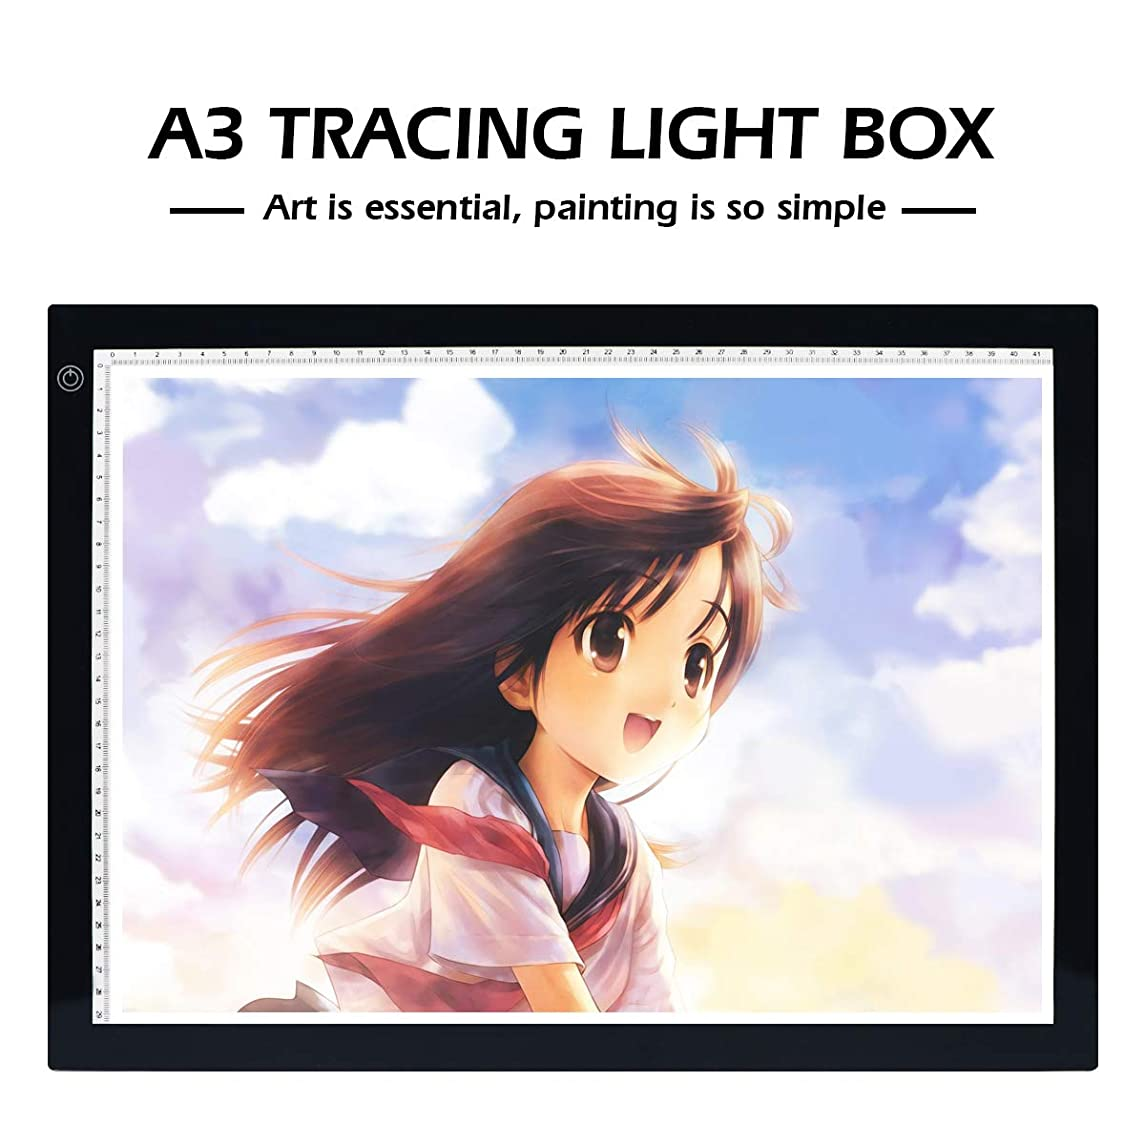 UKON A3 LED Light Box Drawing Light Pad Art Tracing Xray Light Board for Tracer Kids Artists Diamond Painting with Dimmable Brightness for Embroidery Sketching Animation Stenciling (A3 with Stand)